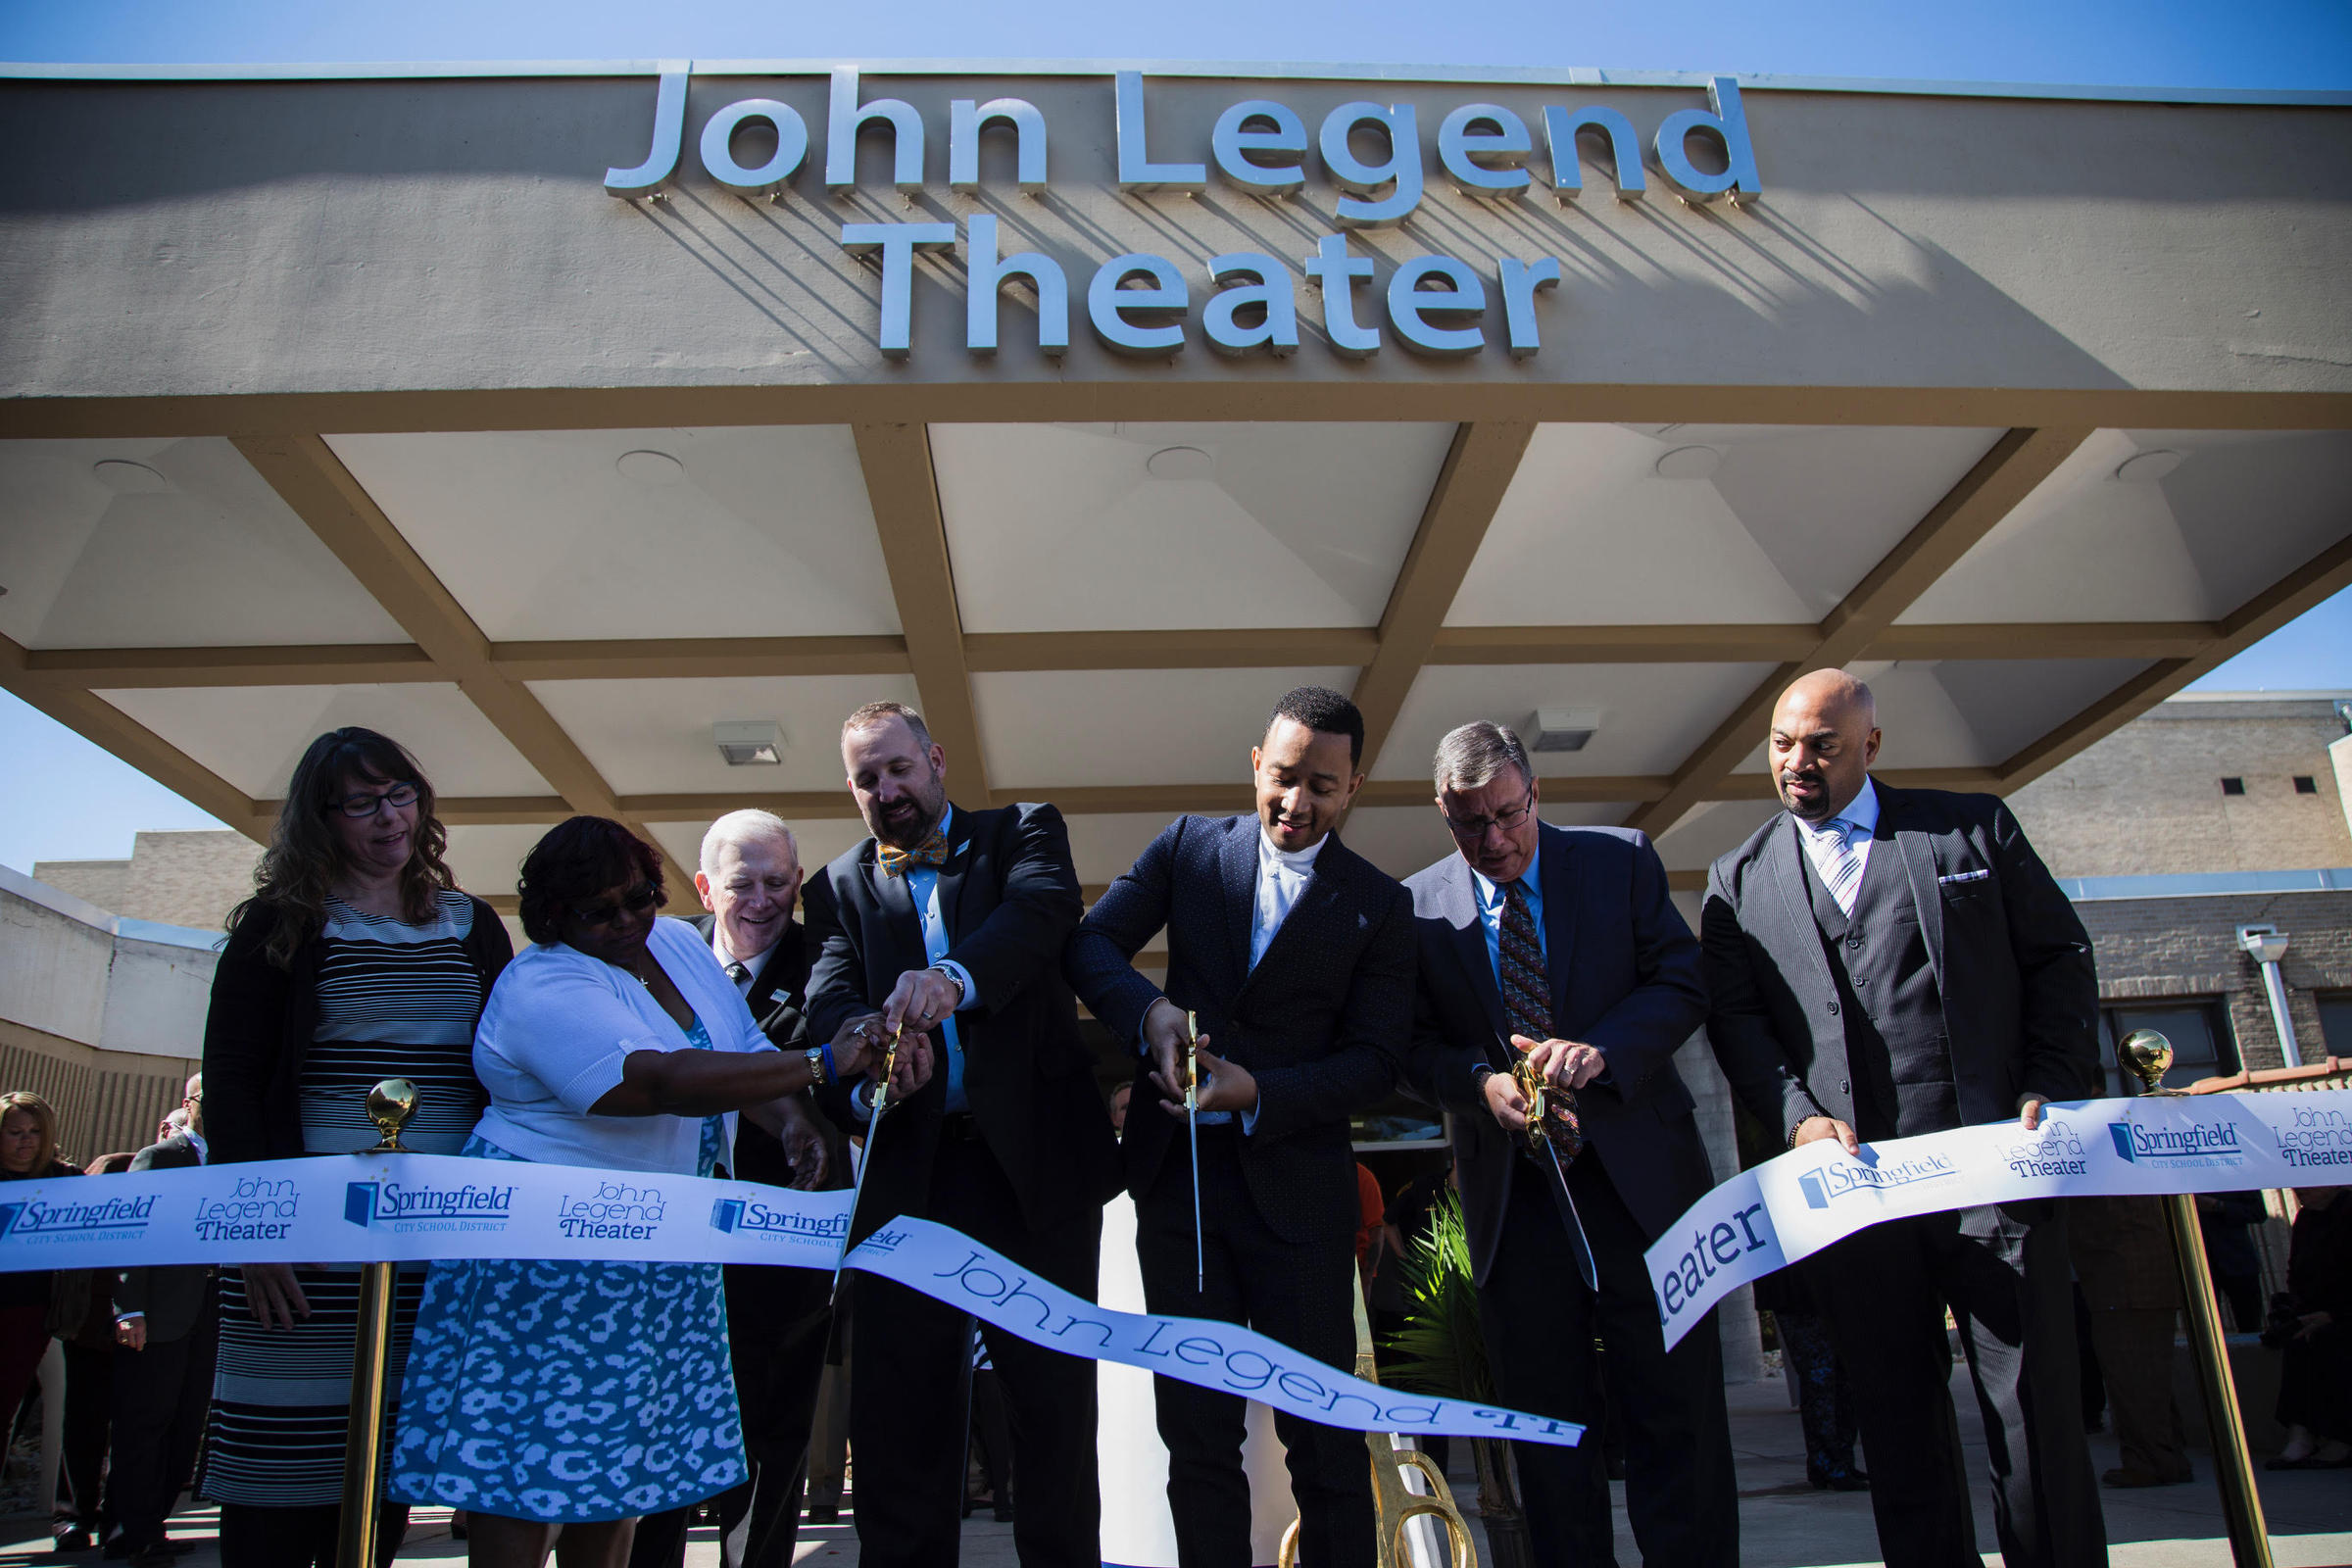 Singer John Legend opens Ohio Theater named in his honor